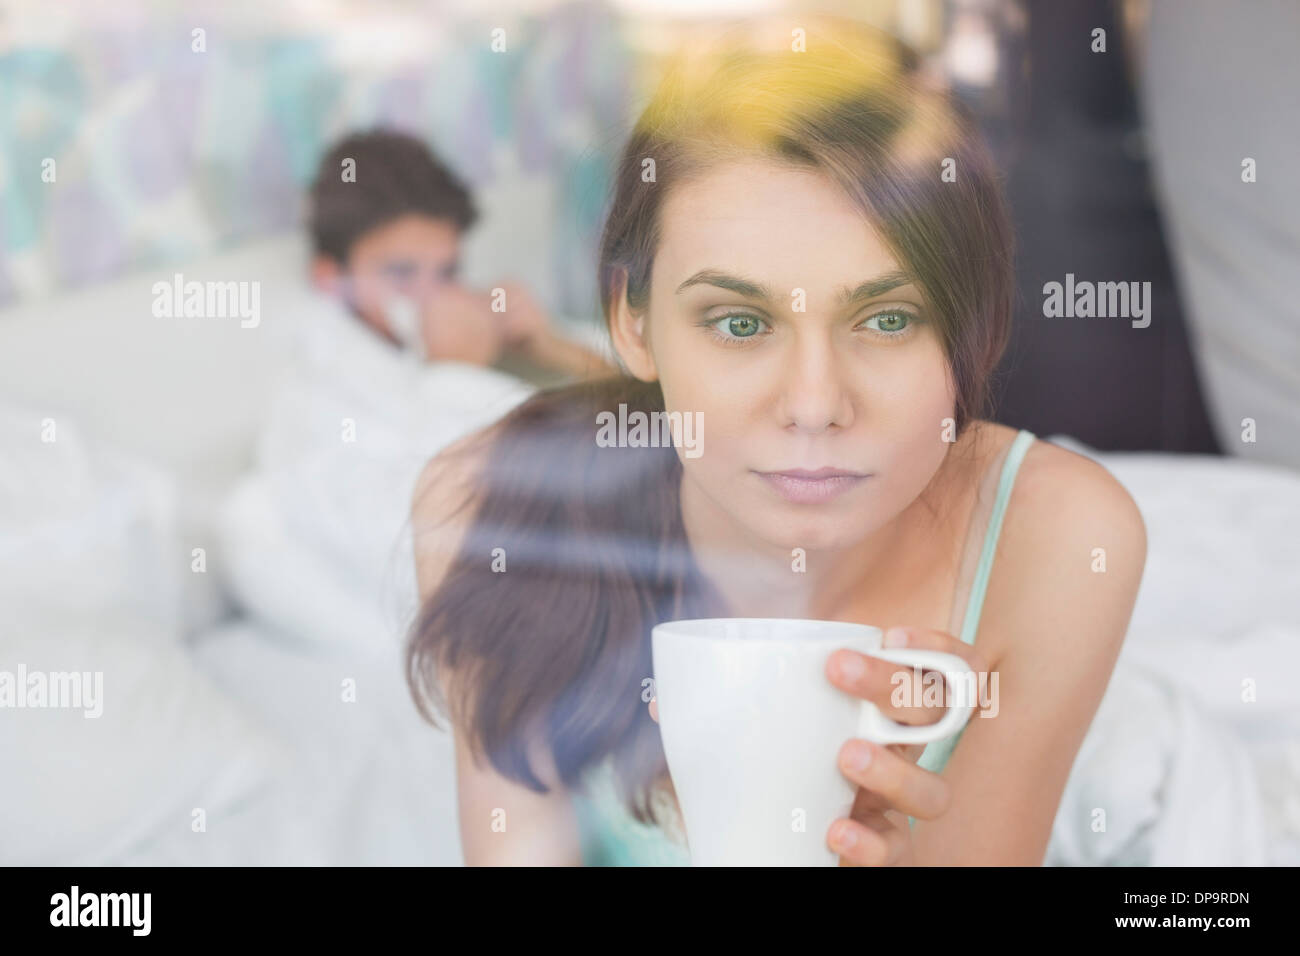 Thougtful woman having coffee at home with man lying in background - Stock Image